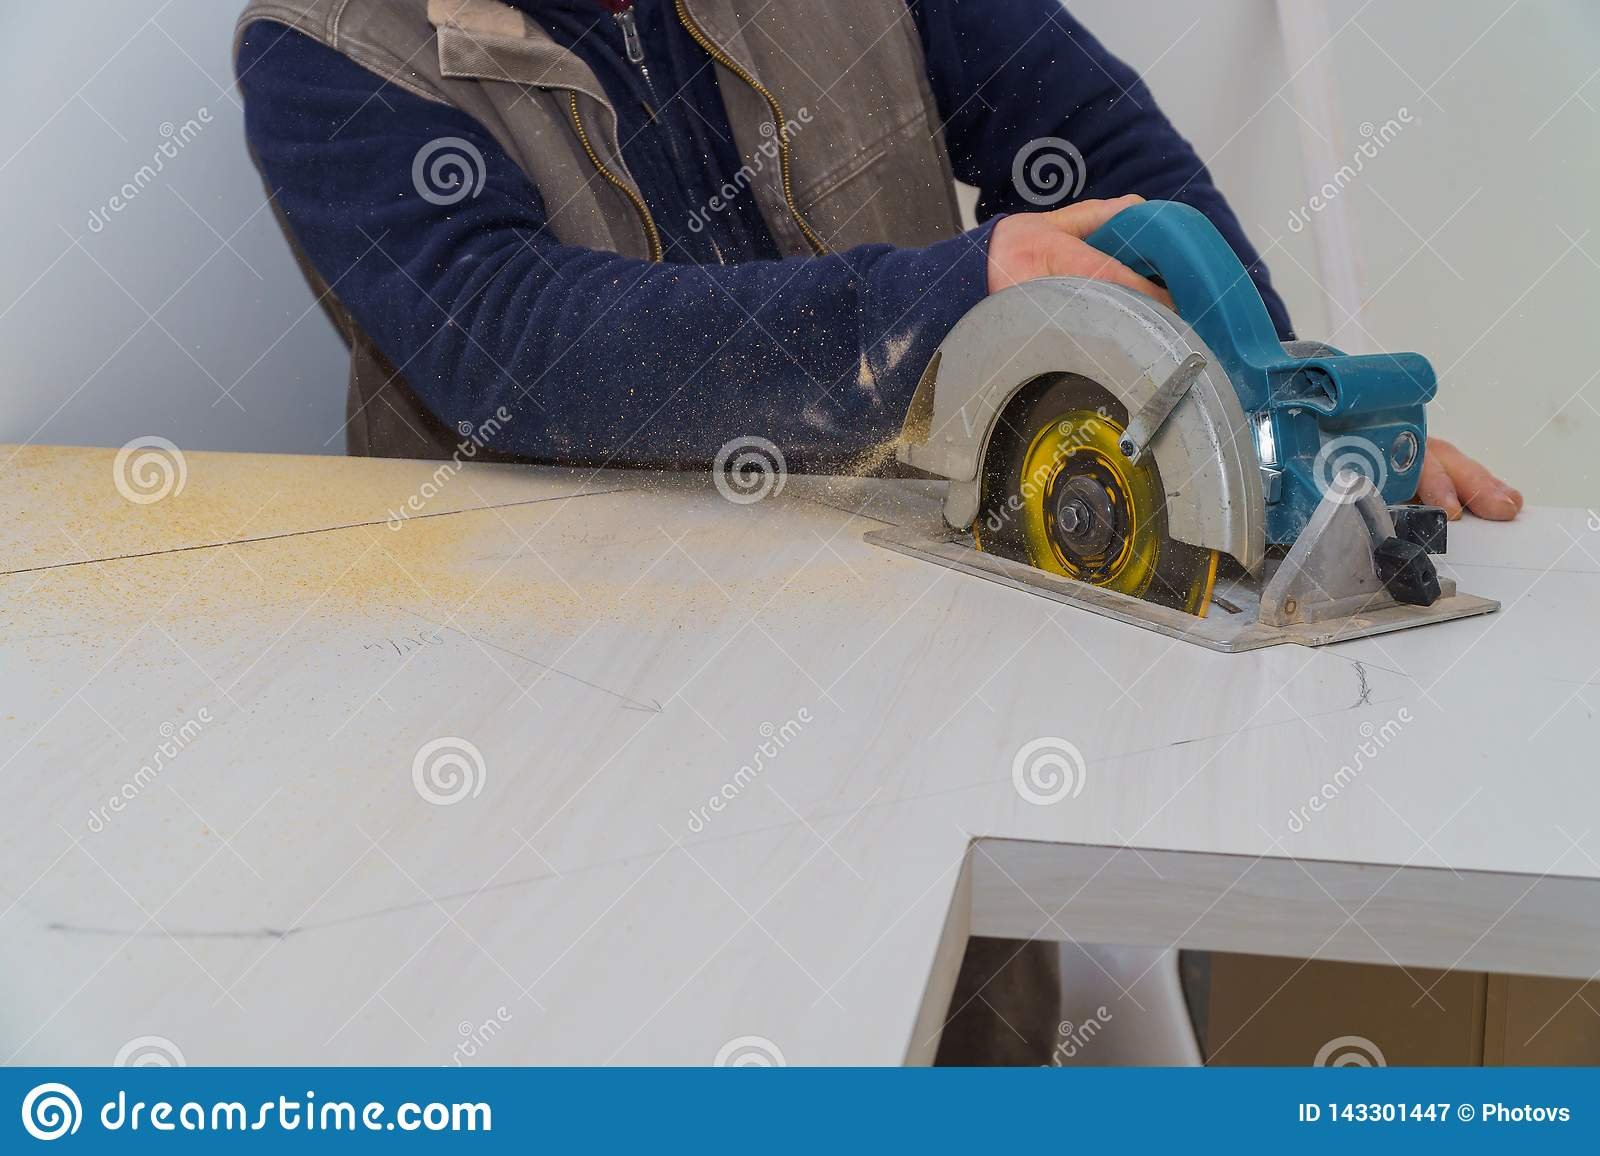 Contractor Using Electric Saw To Cut Through A Laminate Kitchen Formica Counter Top Focus On Saw Stock Image Image Of Measuring Countertop 143301447